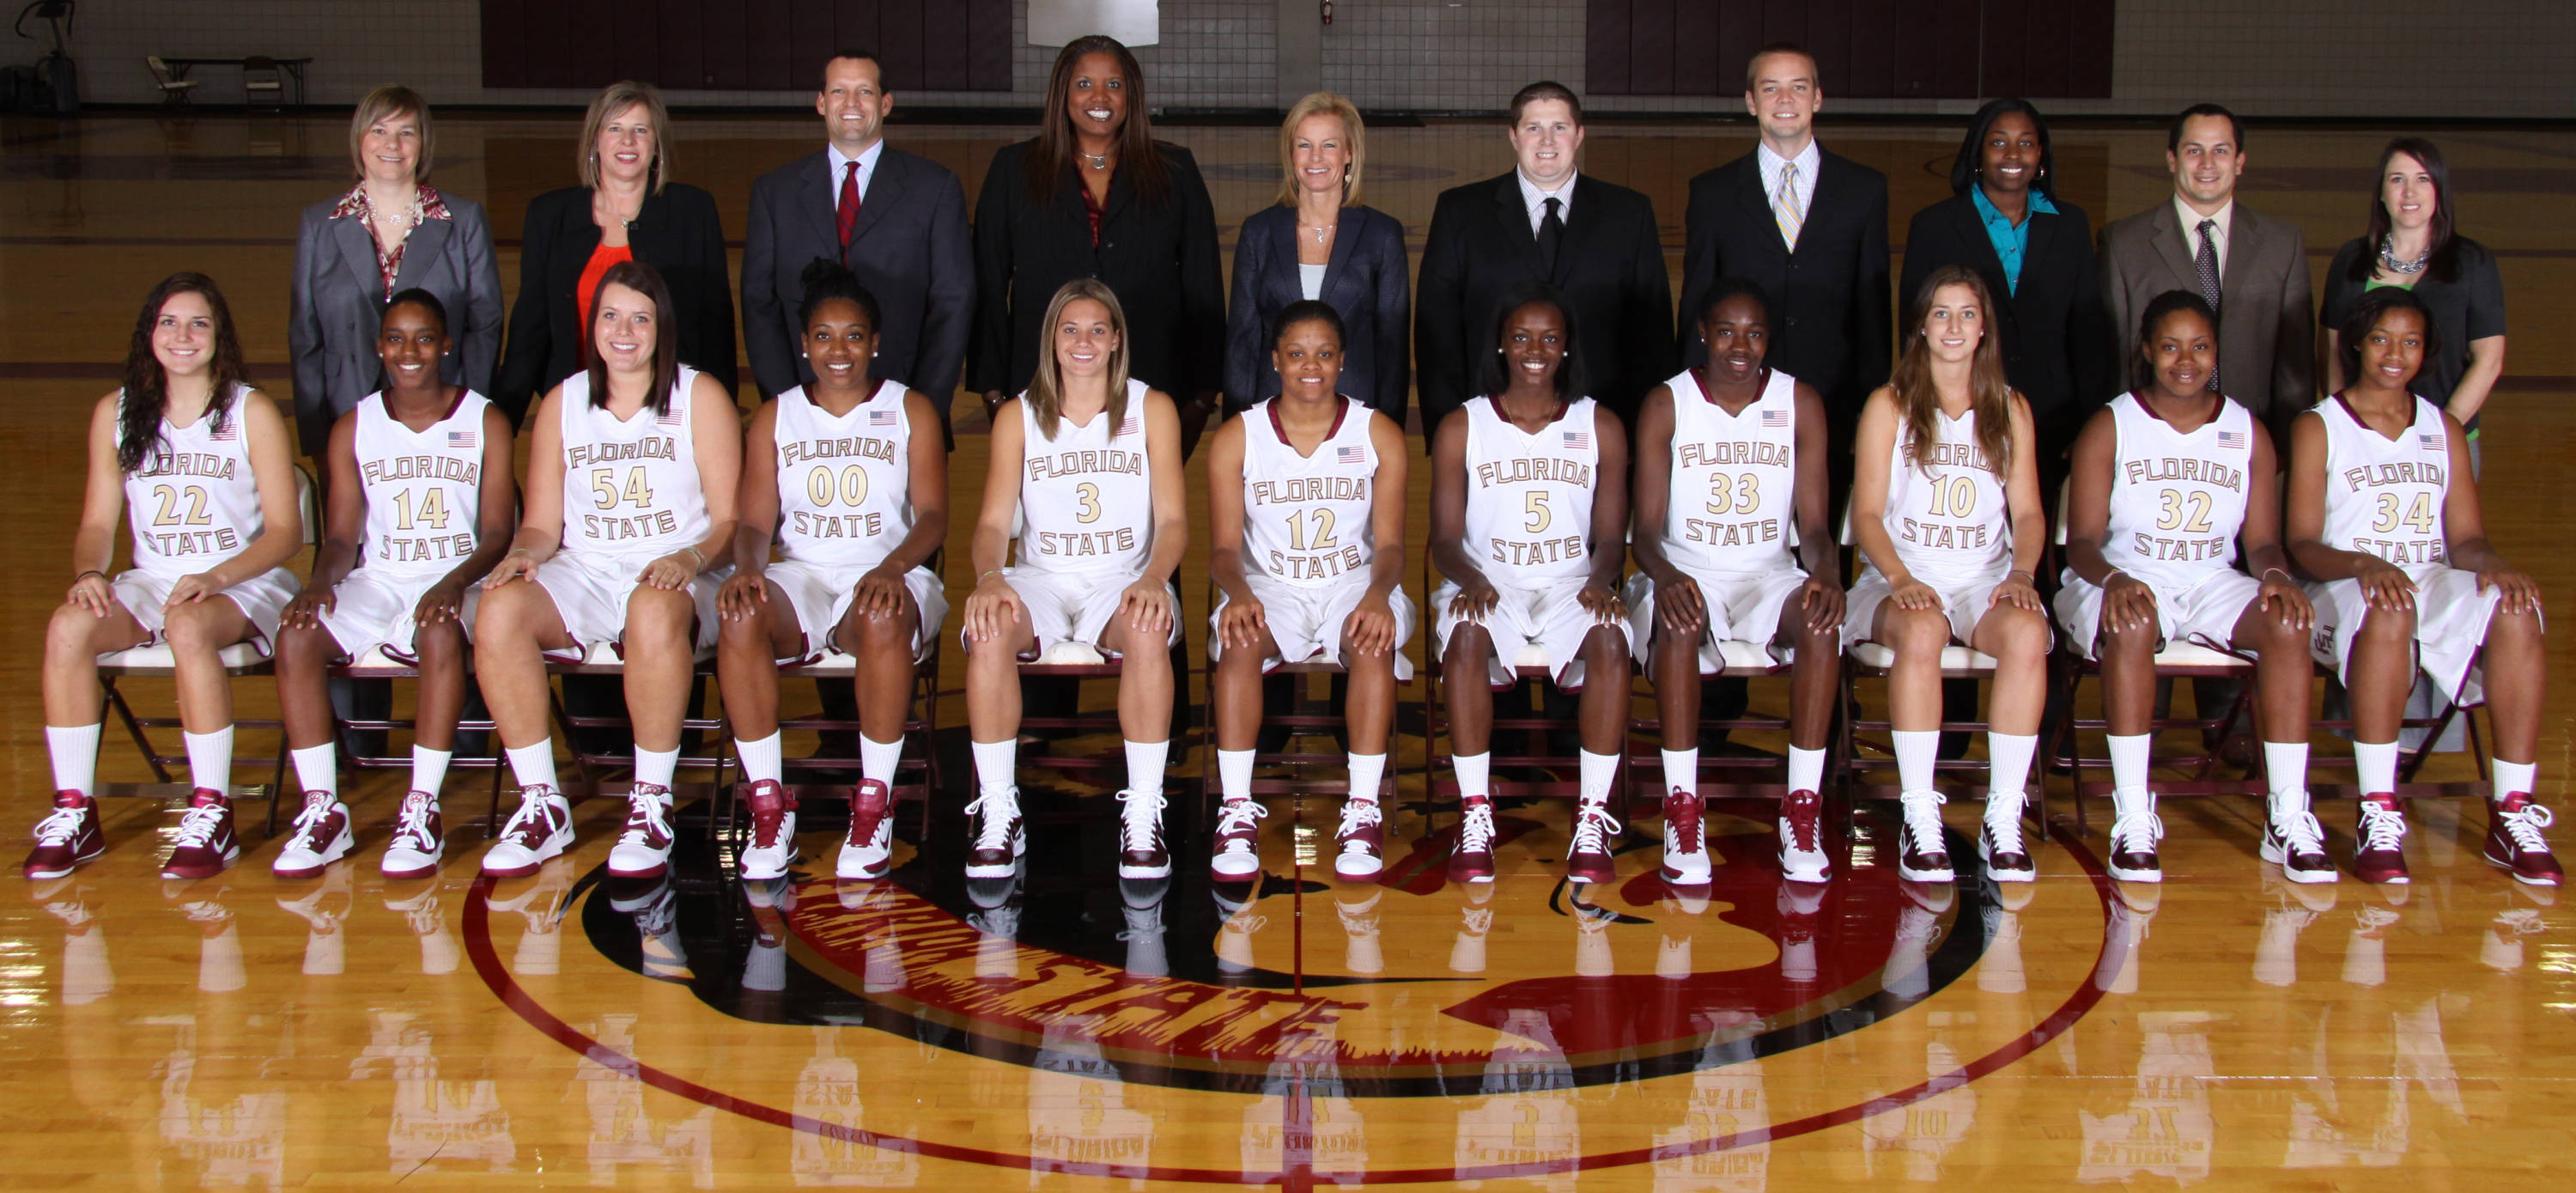 Sept. 22 ... Now presenting, the 2010-11 Florida State women's basketball team photo!